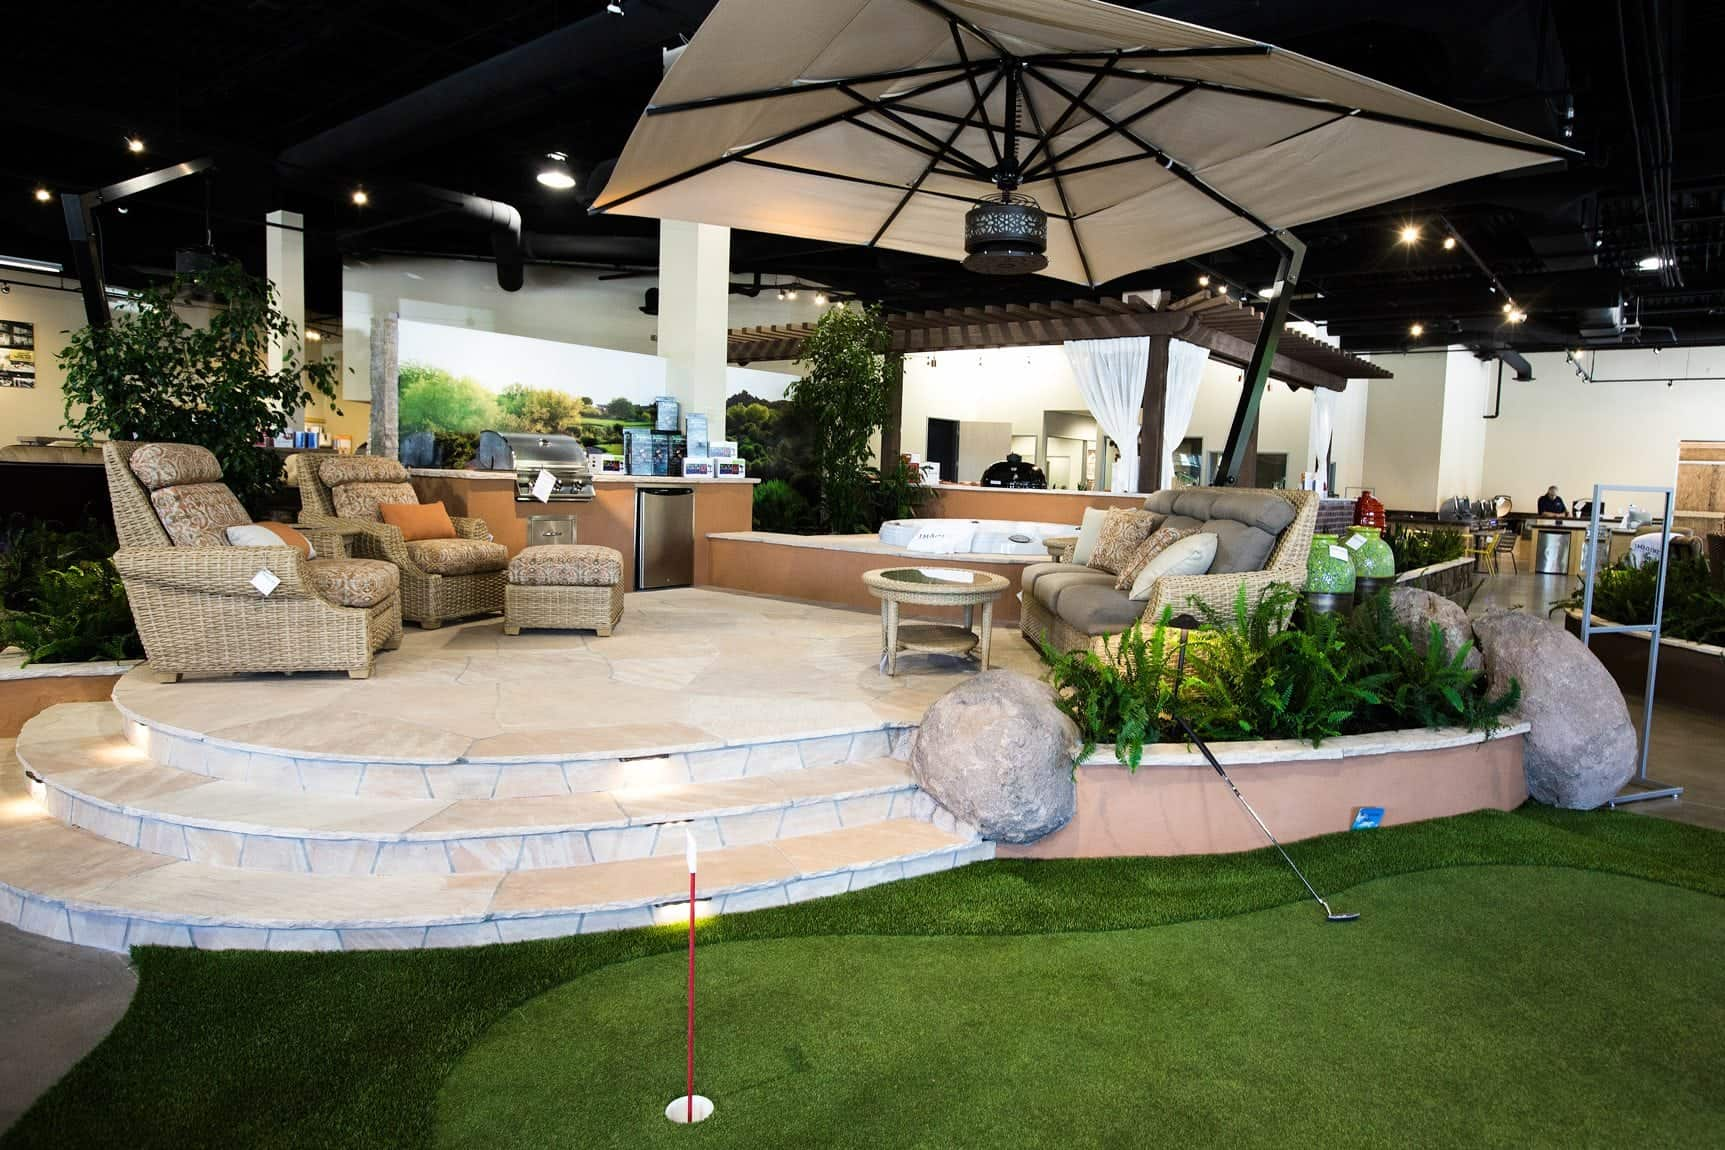 7 tips for a well appointed backyard patio space imagine for Backyard living